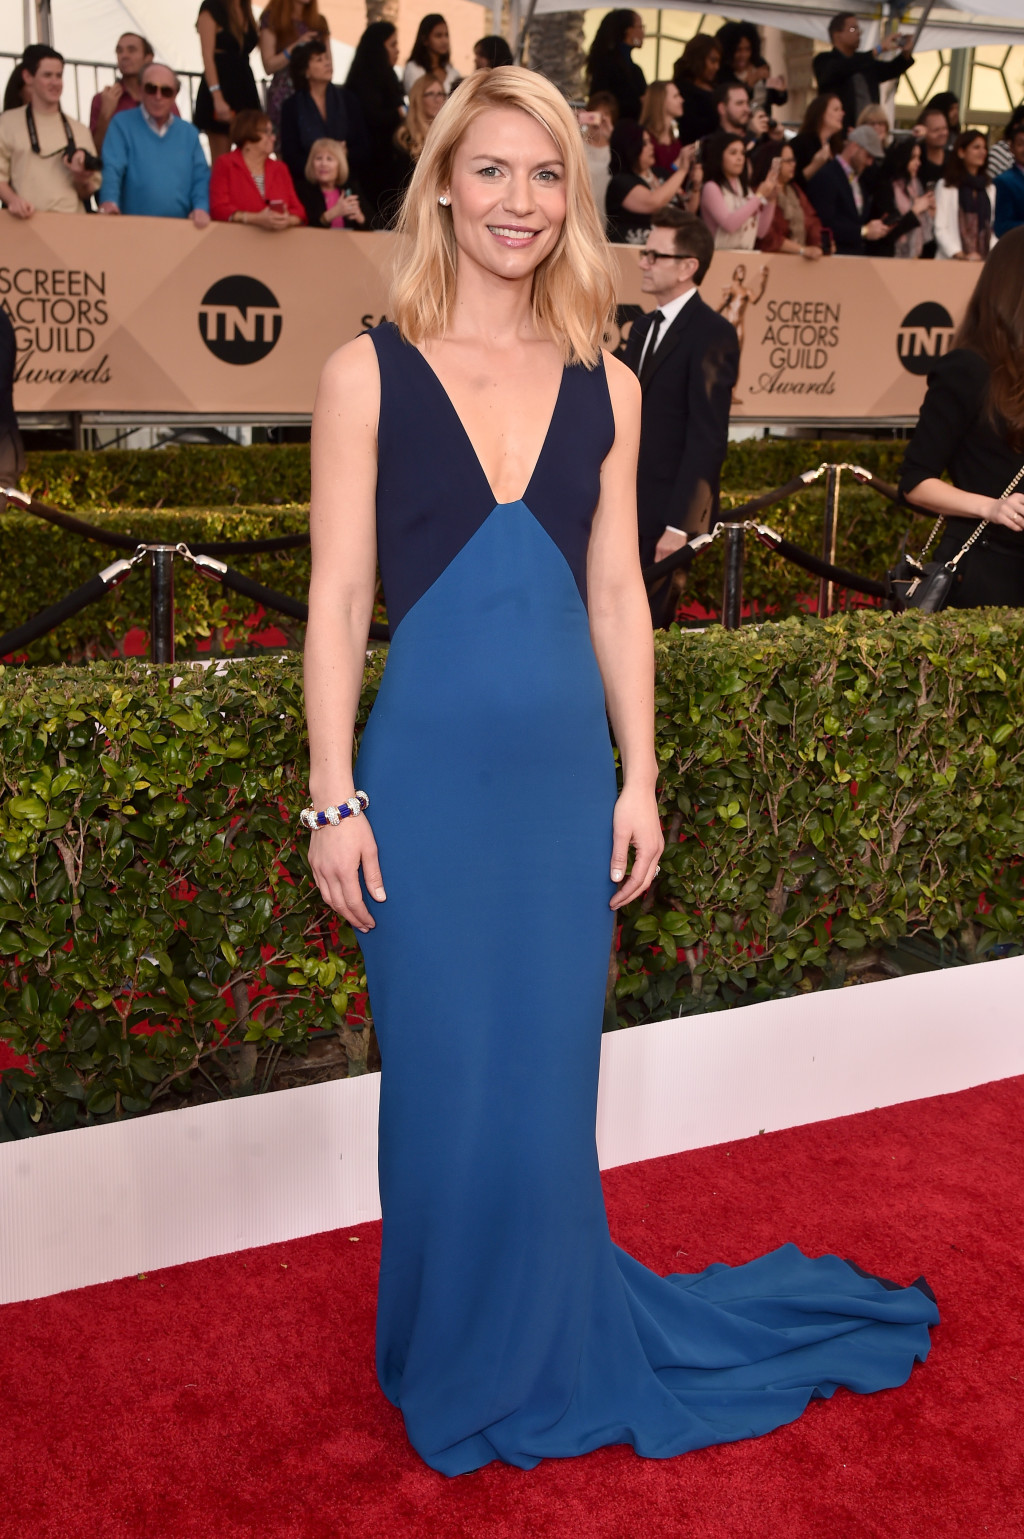 Claire Danes in a color-blocked Stella McCartney gown at the 2016 SAG Awards